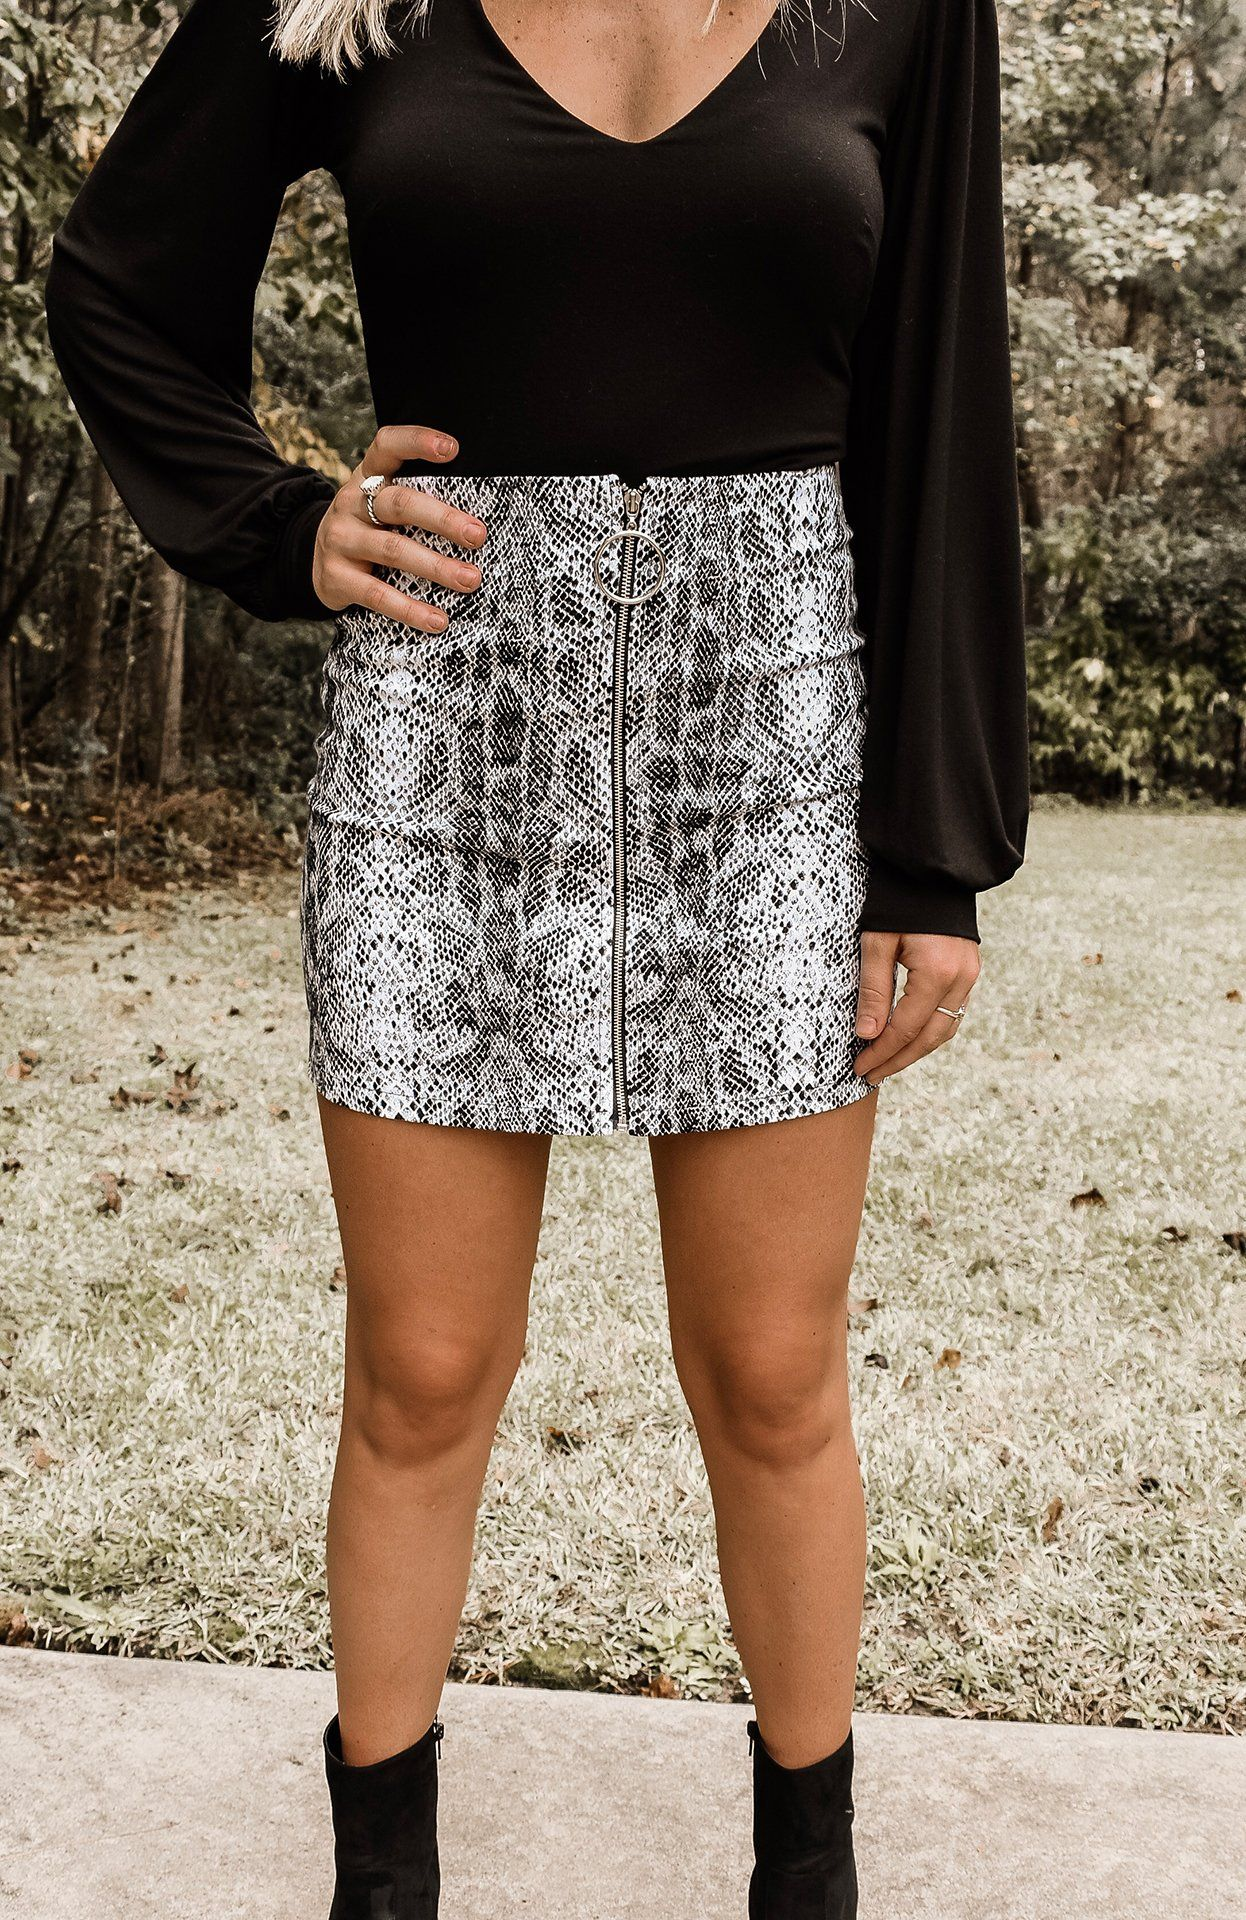 782d58dda2 Black & white snakeskin printed mini skirt with an O ring zipper closure  front. Kennedy is 5'3, a size 2 & wearing a small Fits true to size - if  between ...